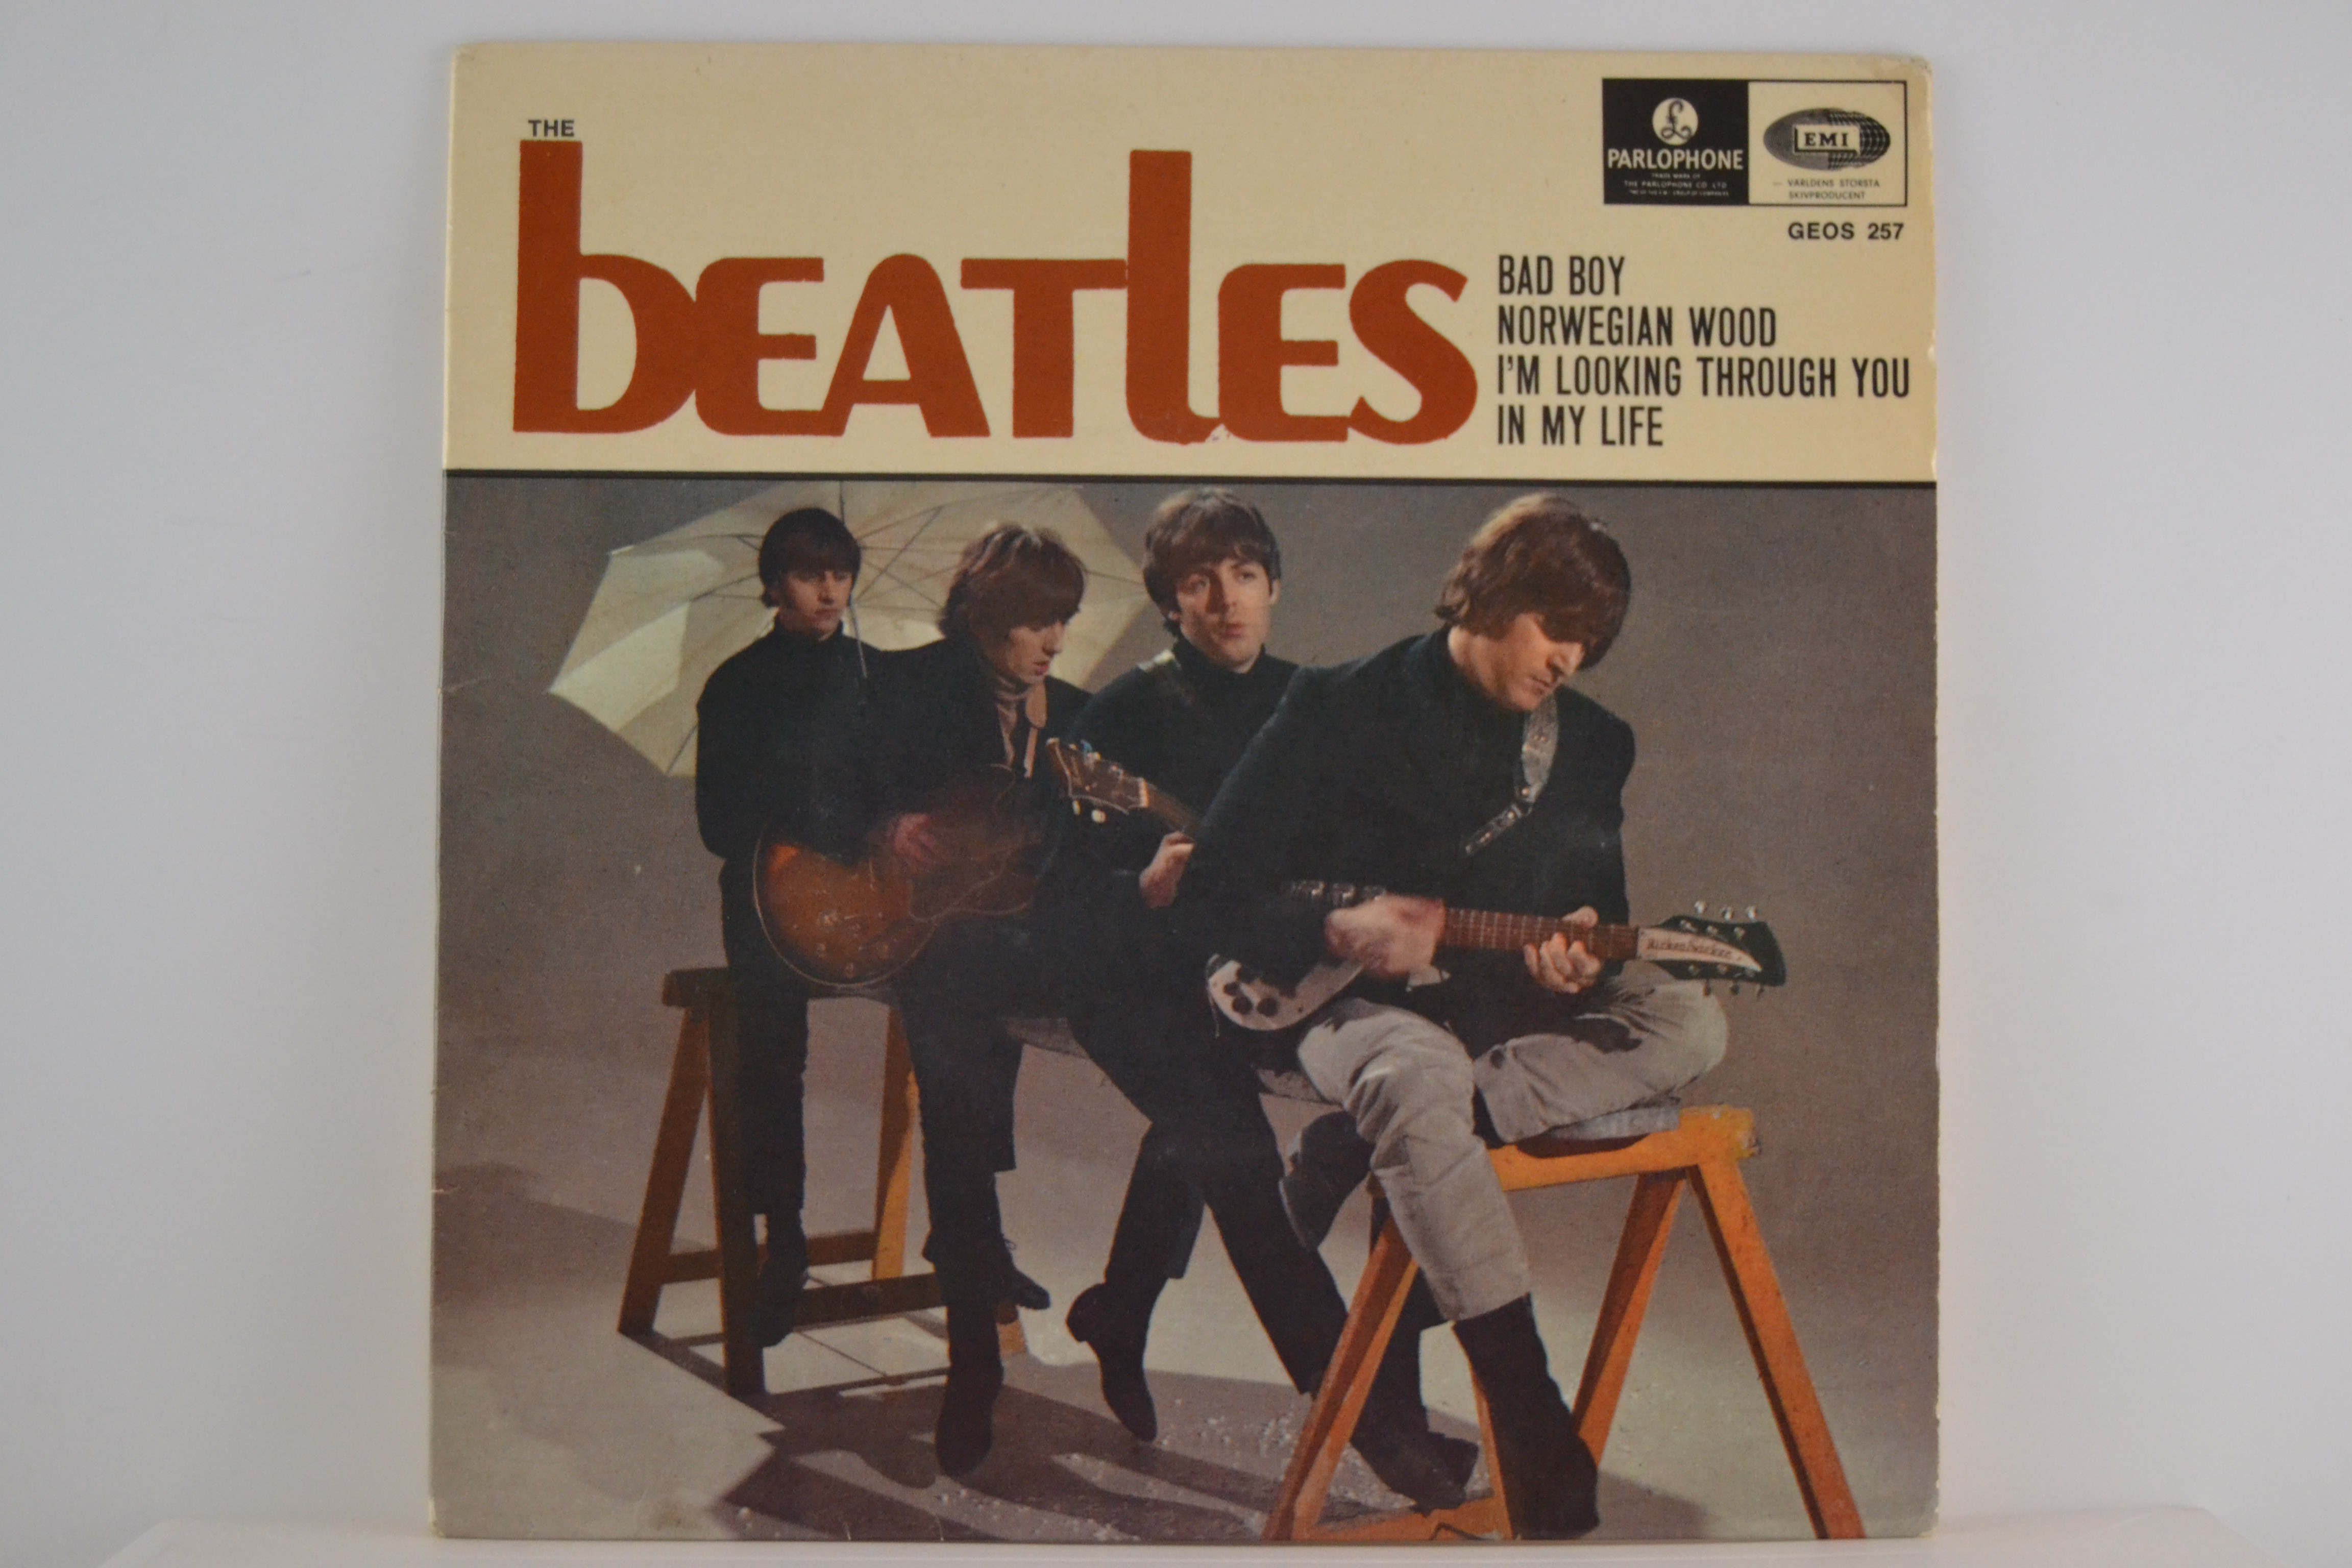 BEATLES The : (EP) Bad boy / Norwegian wood / I'm looking through you / In my life